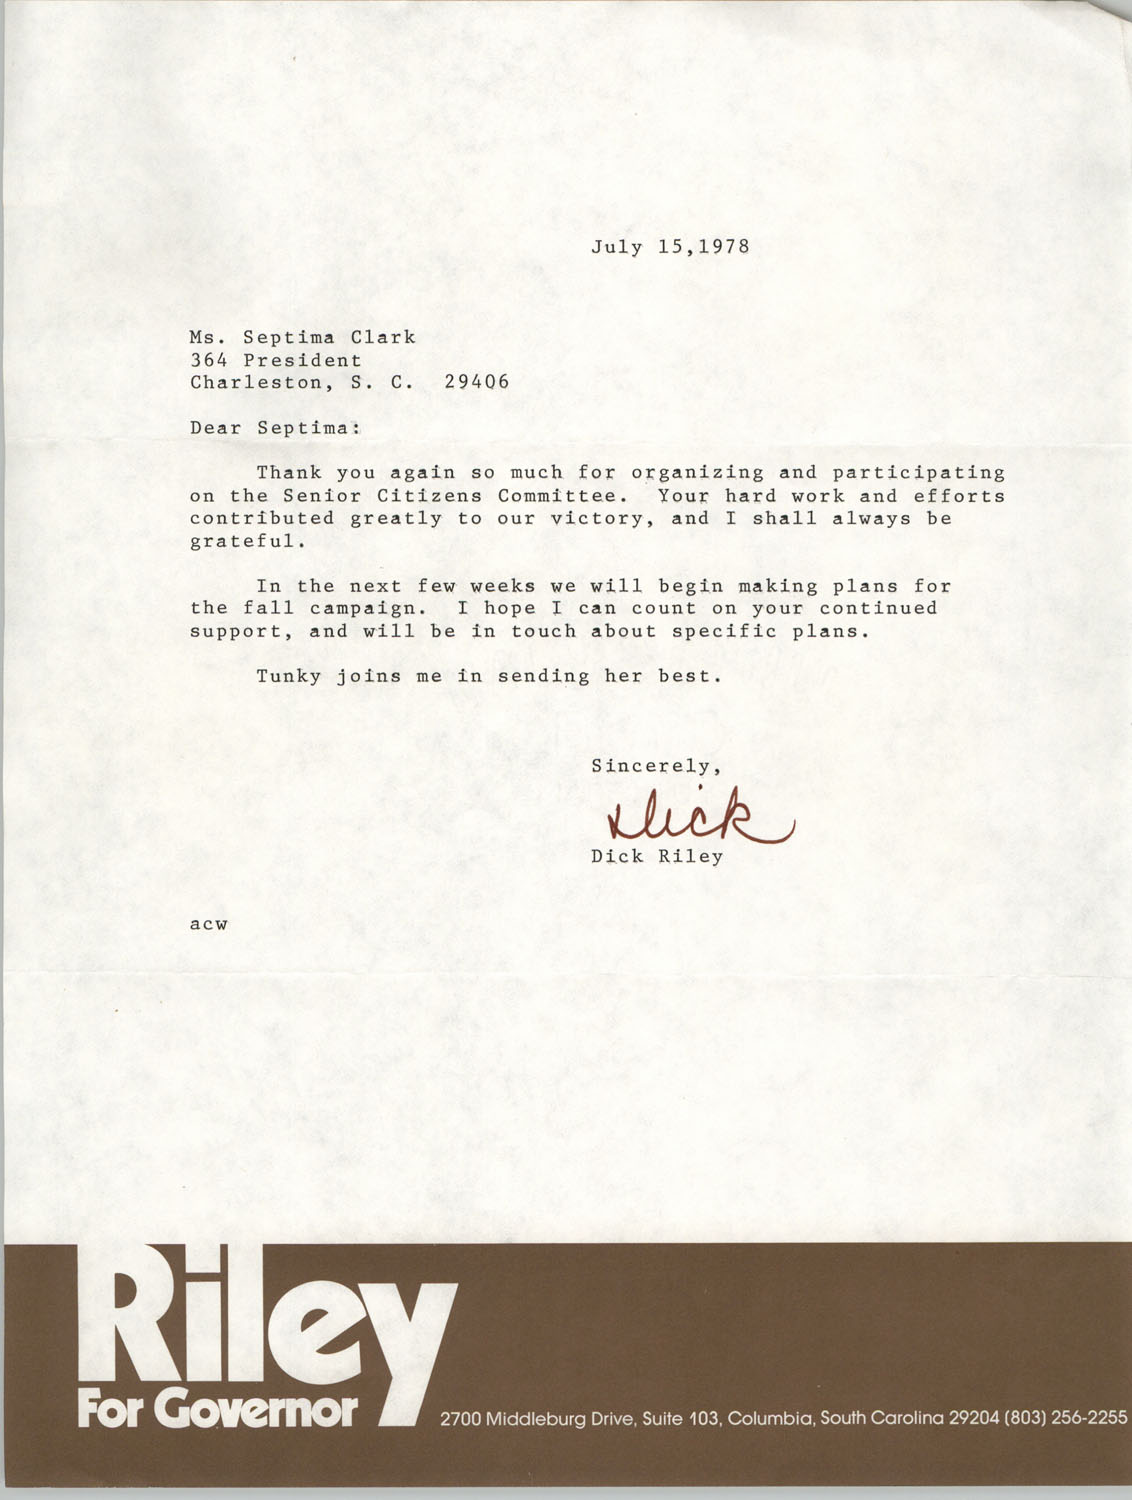 Letter from Dick Riley to Septima P. Clark, July 15, 1978